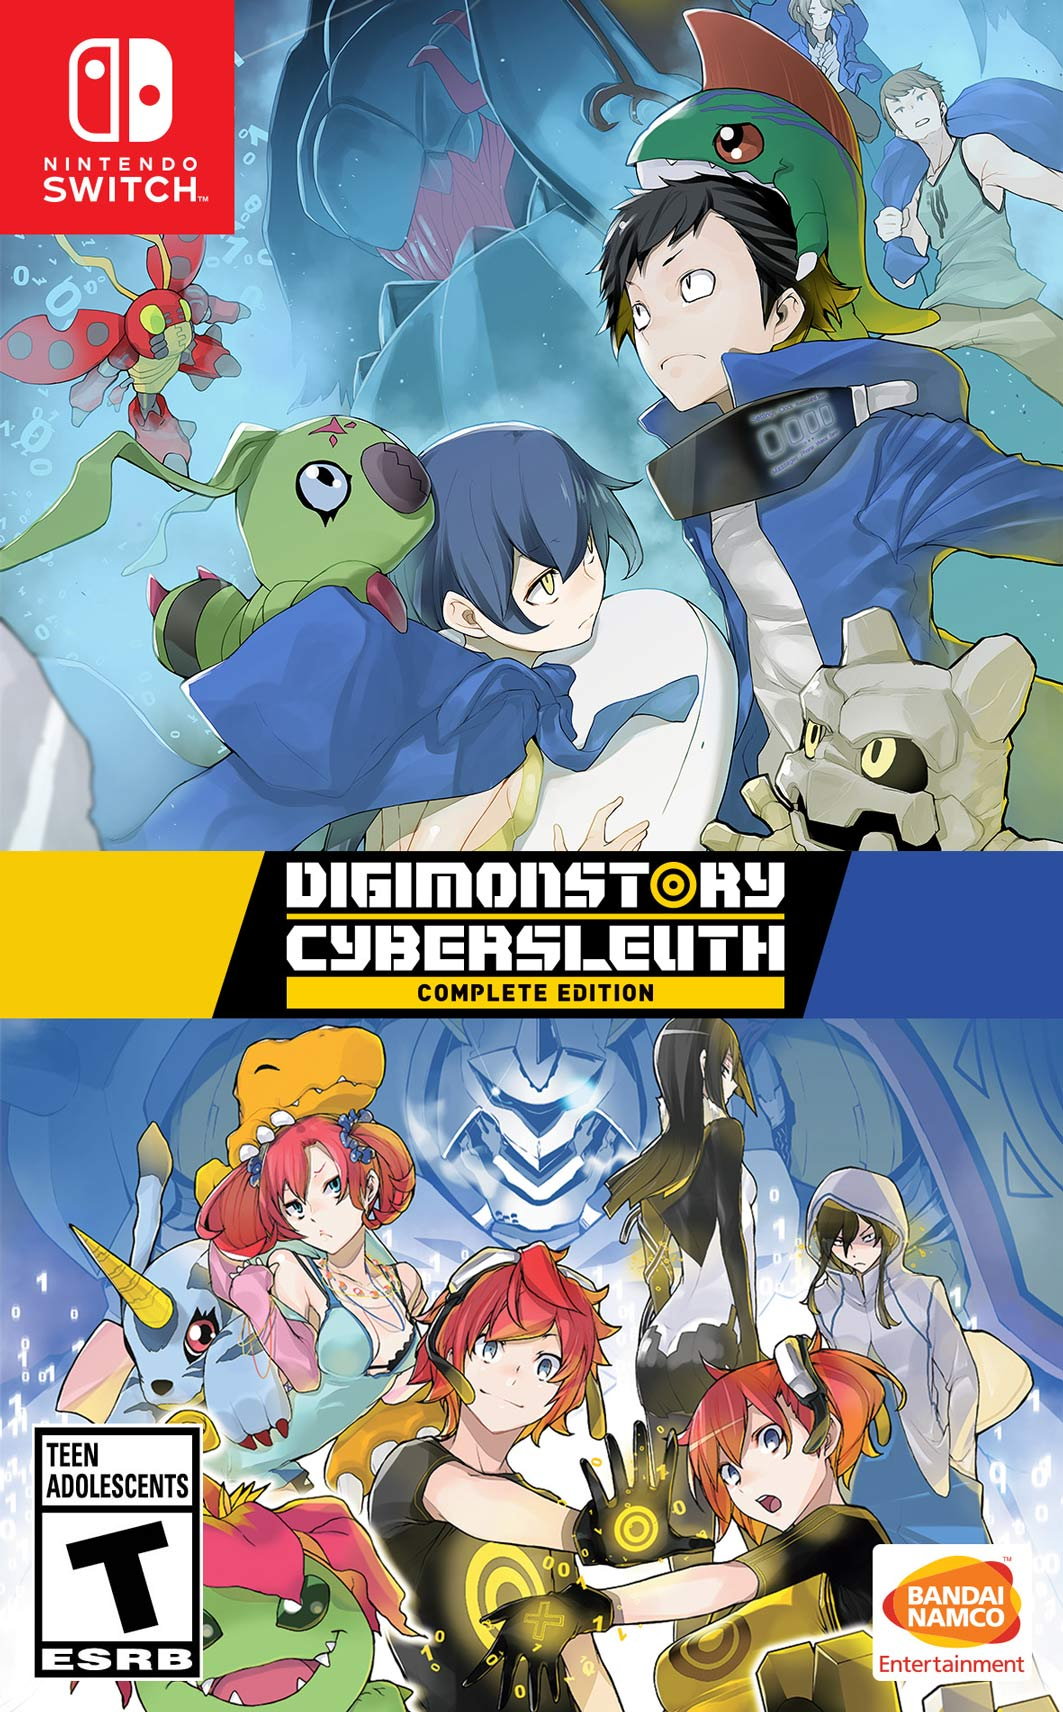 Digimon Story: Cyber Sleuth - Hacker's Memory - Version 1.0.2 on the way, will fix game save issue